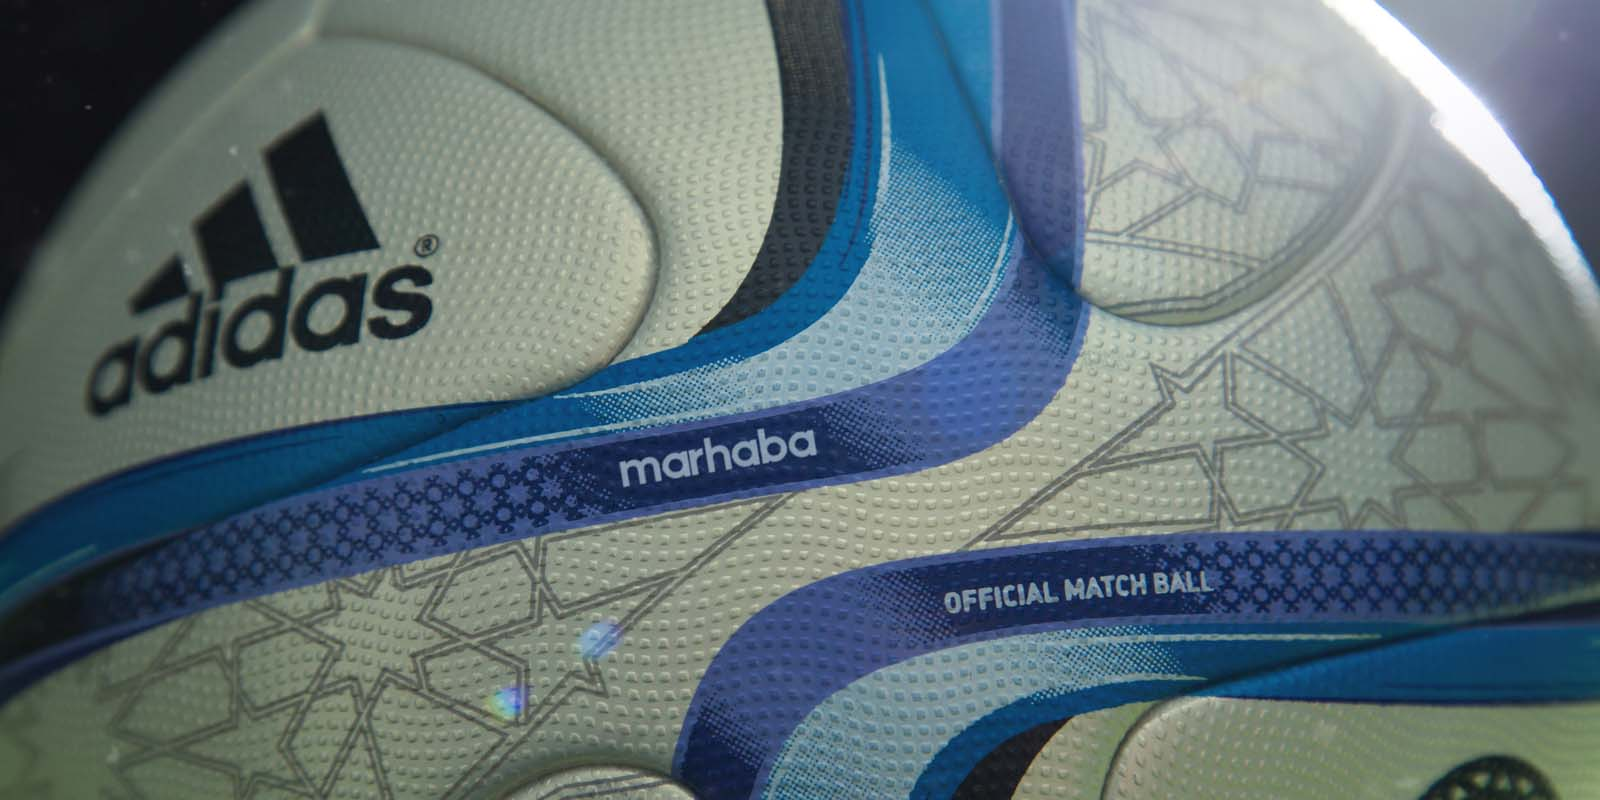 ccb53853045 The new Africa Cup of Nations 2015 Ball is based on the popular Adidas  Brazuca 2014 World Cup Ball. Like the Adidas Brazuca, the new Adidas  Marhaba AFCON ...